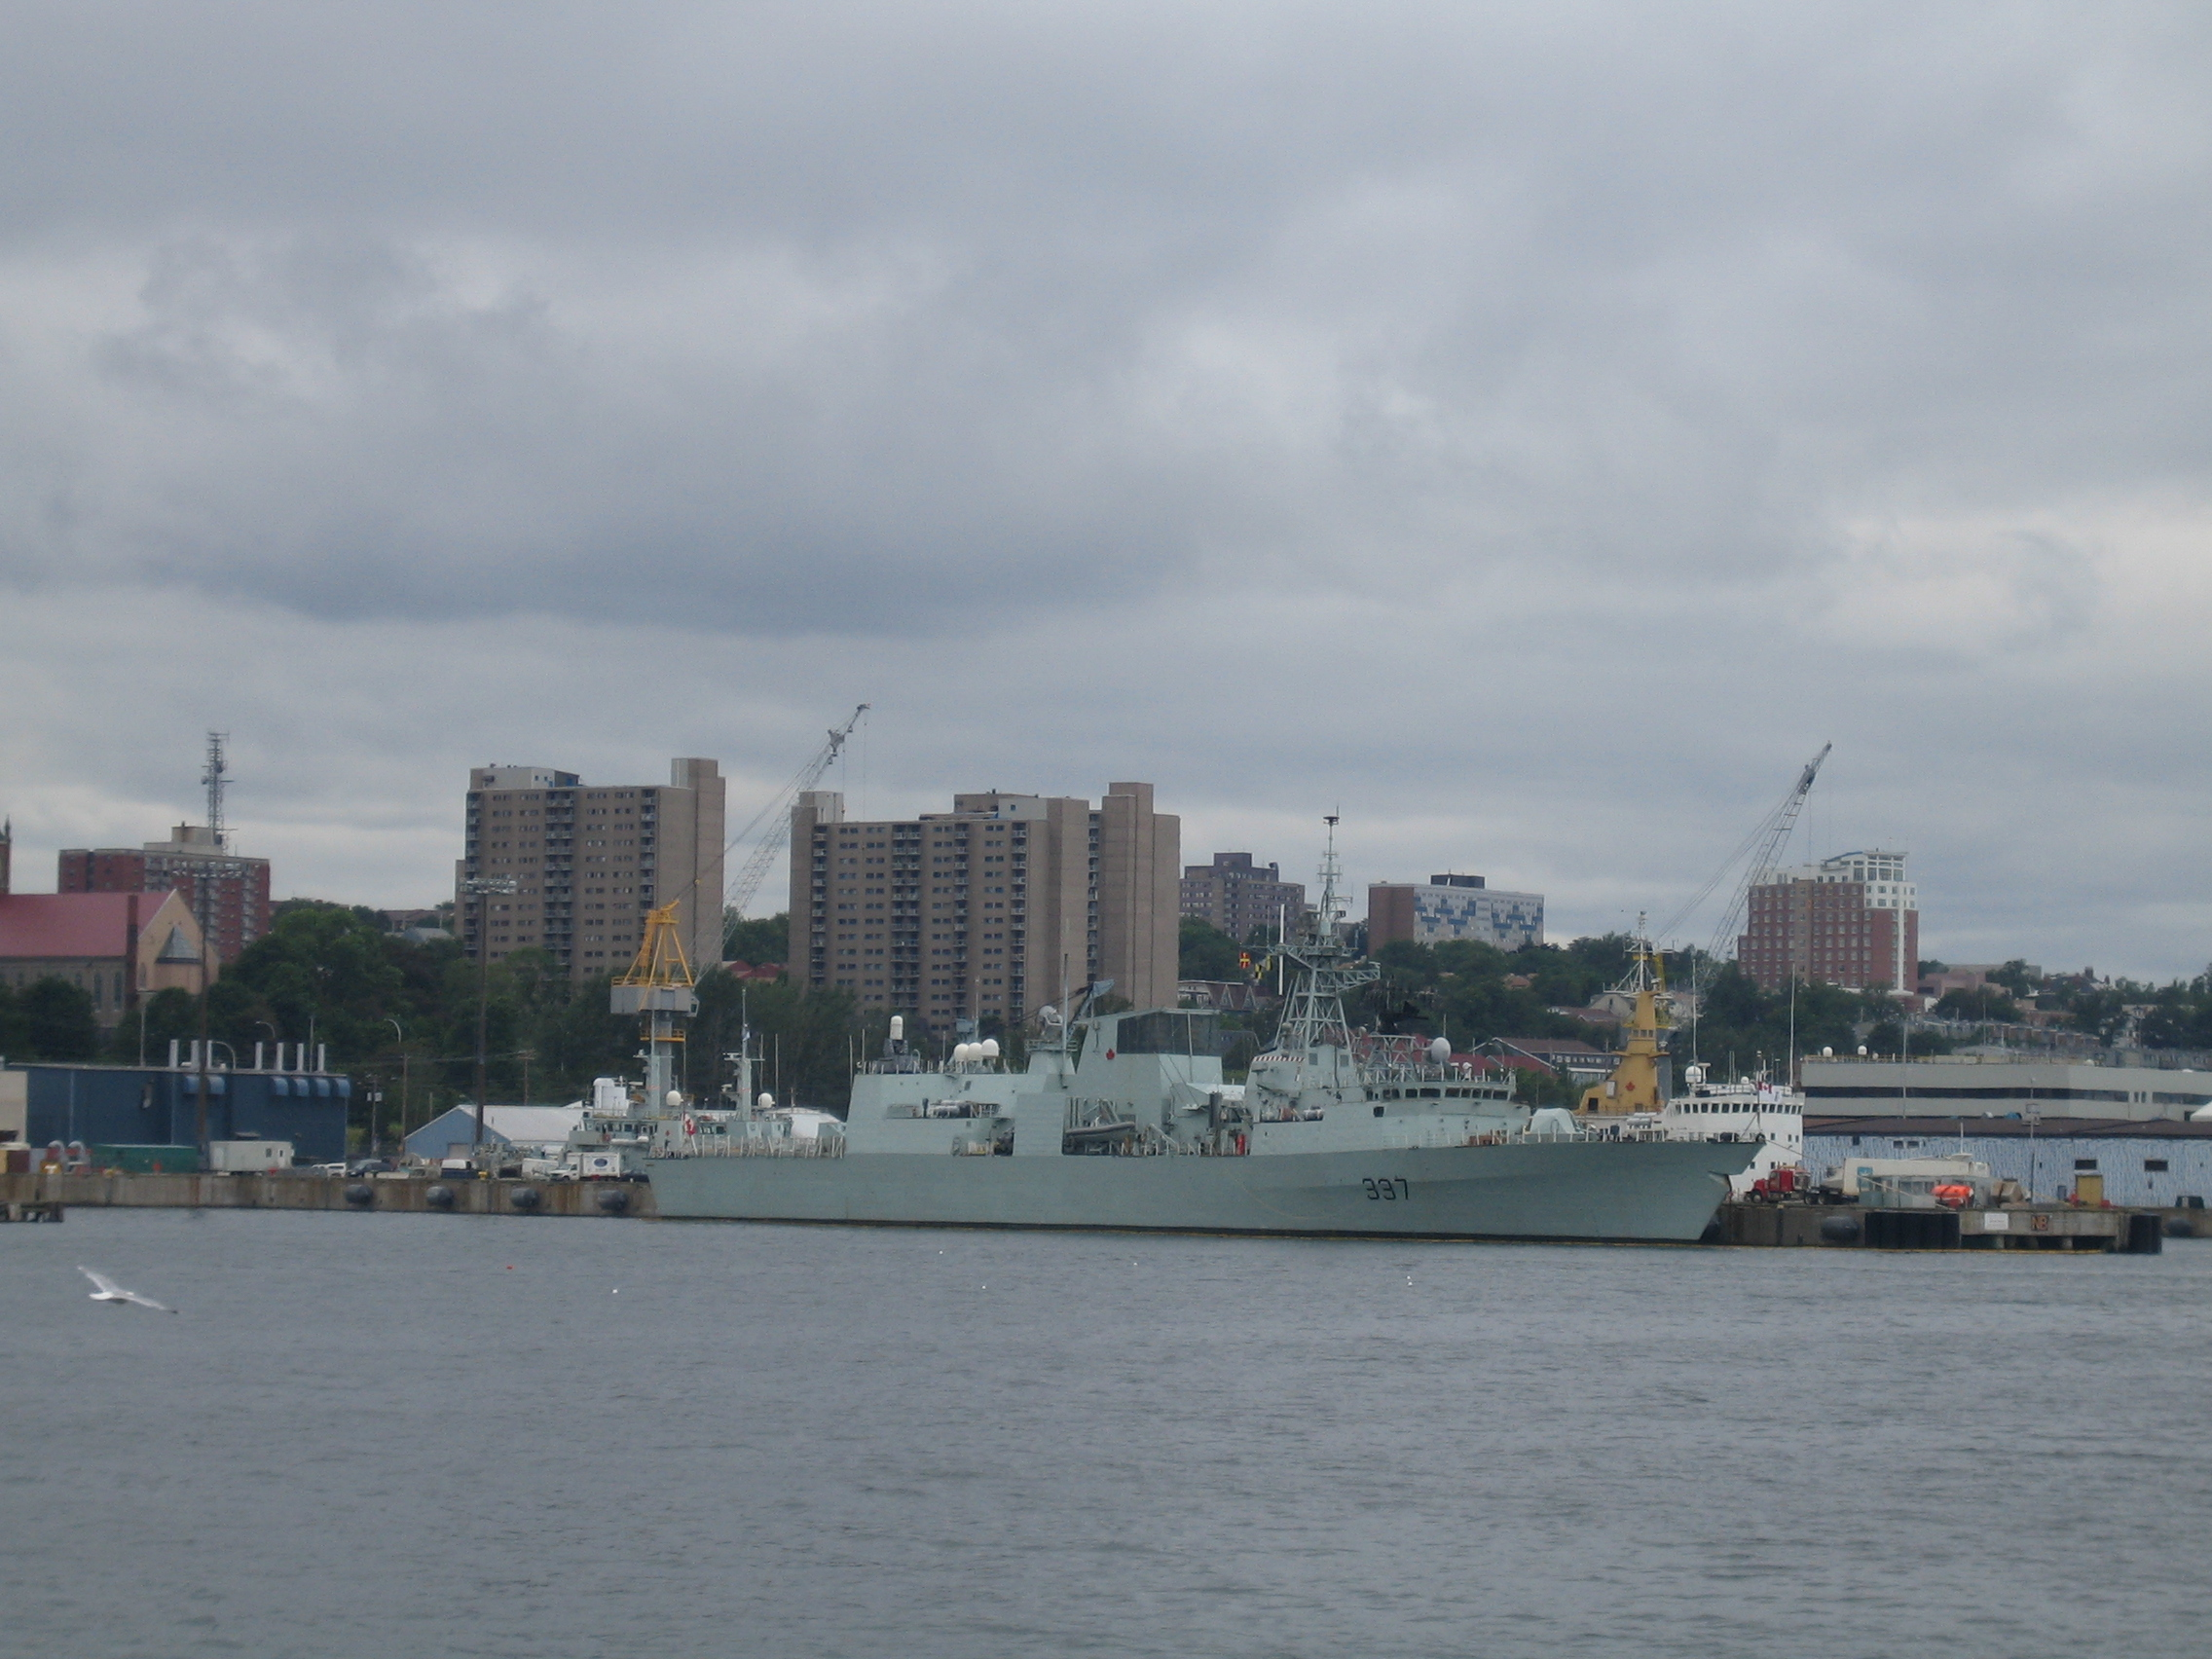 File:426 - Halifax NS.JPG - Wikimedia Commons